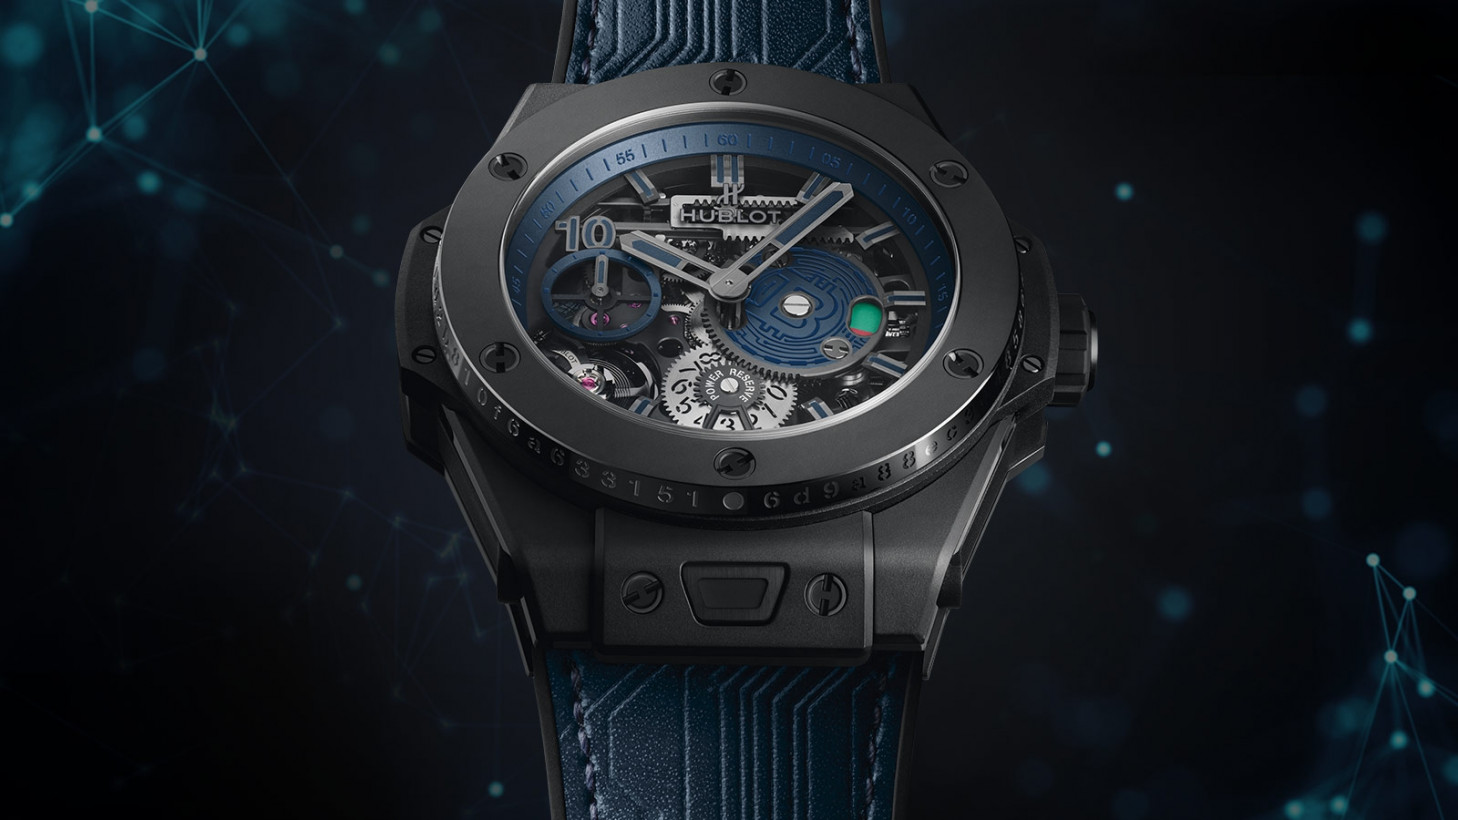 Hublot is making a luxury Bitcoin watch you can only buy with Bitcoin